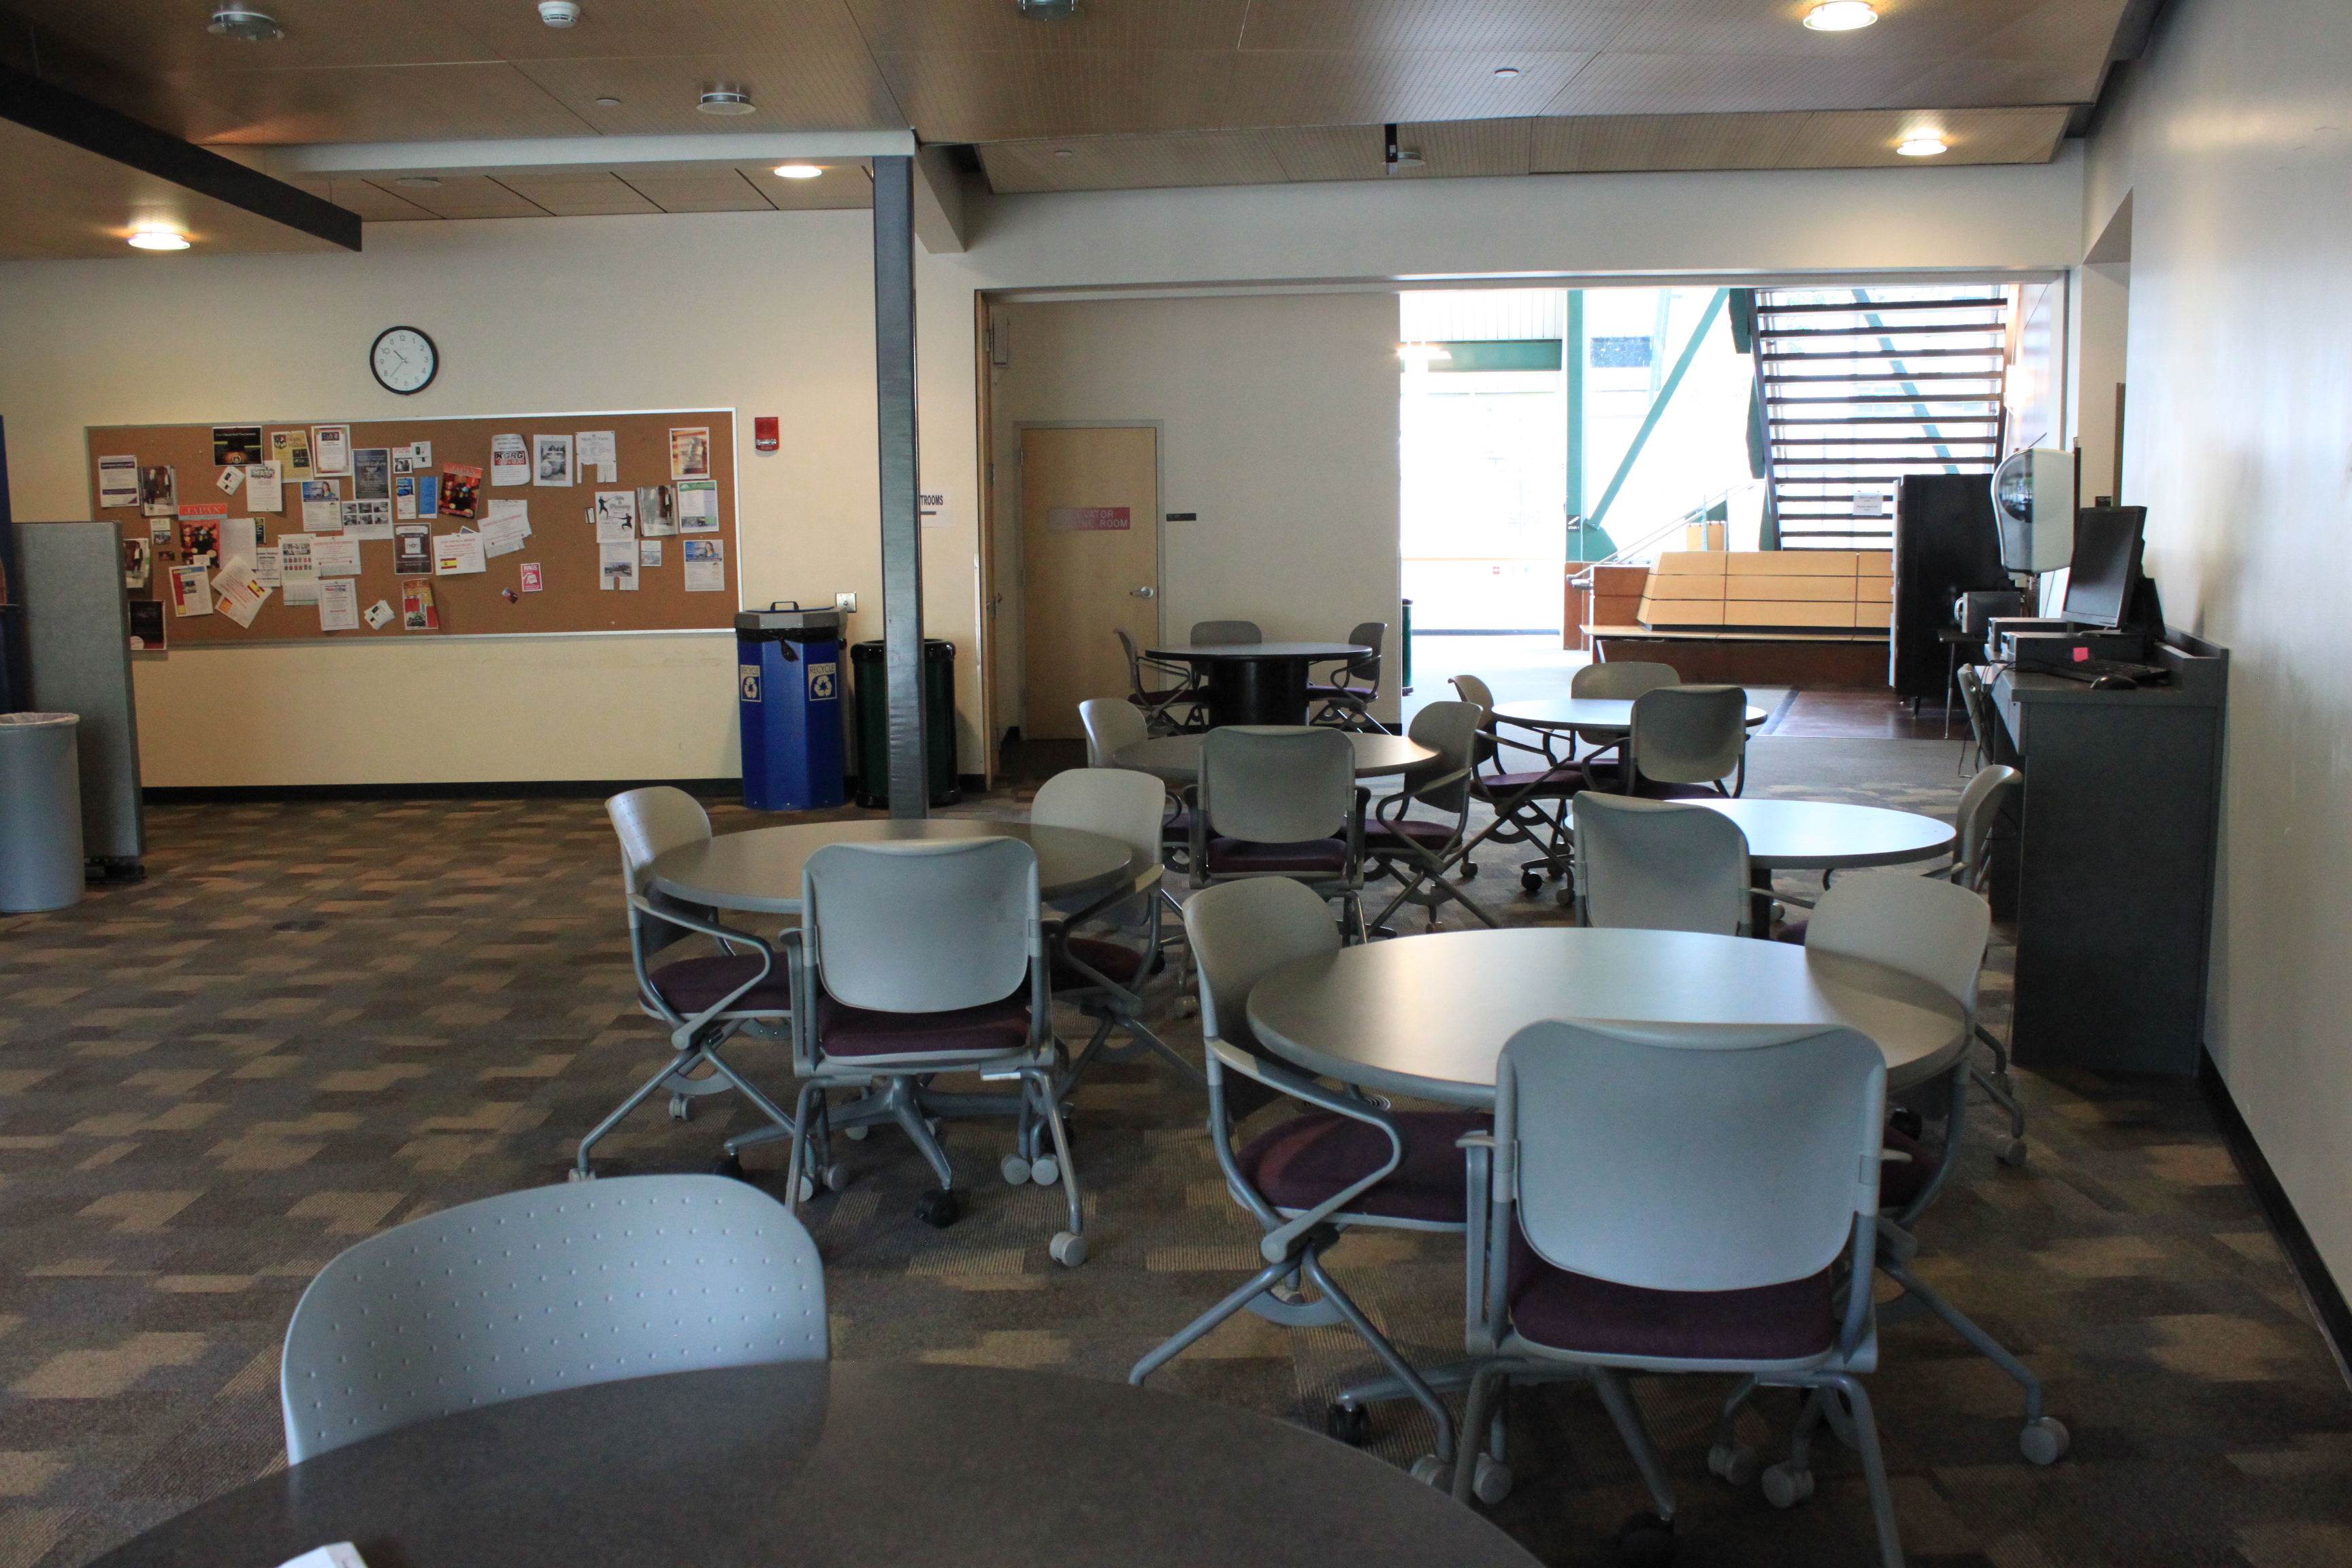 informatal study area - tables and chairs, popular walkway, coffee/snack machines nearby